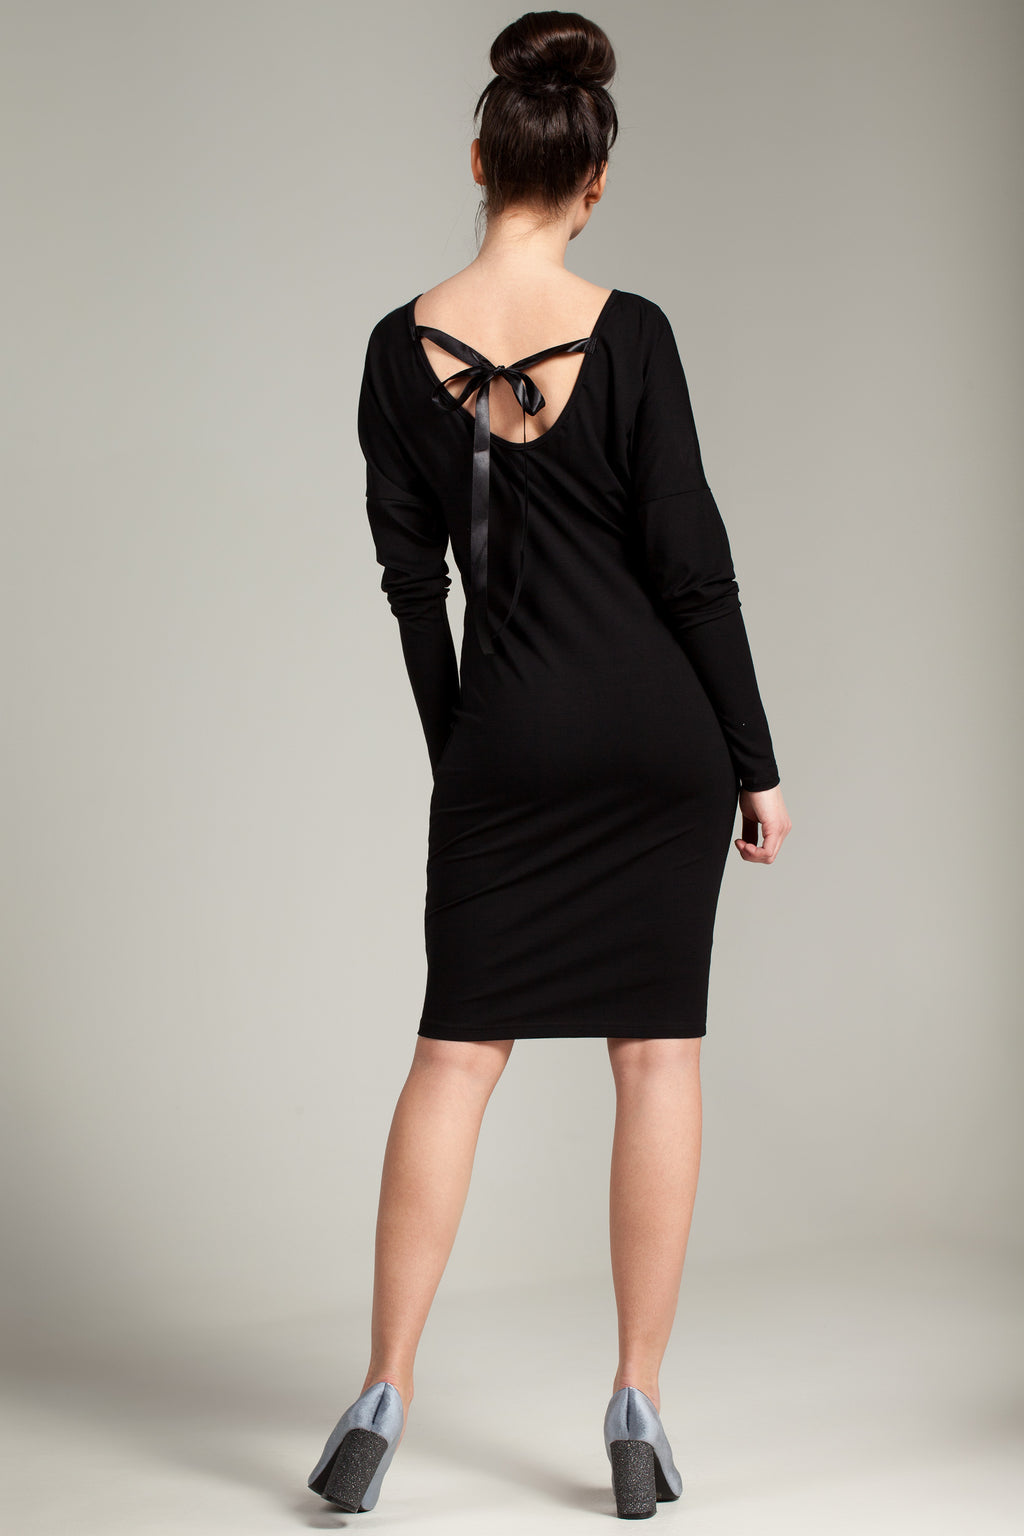 Black Tie Back Batwing Sleeve Viscose Dress - So Chic Boutique